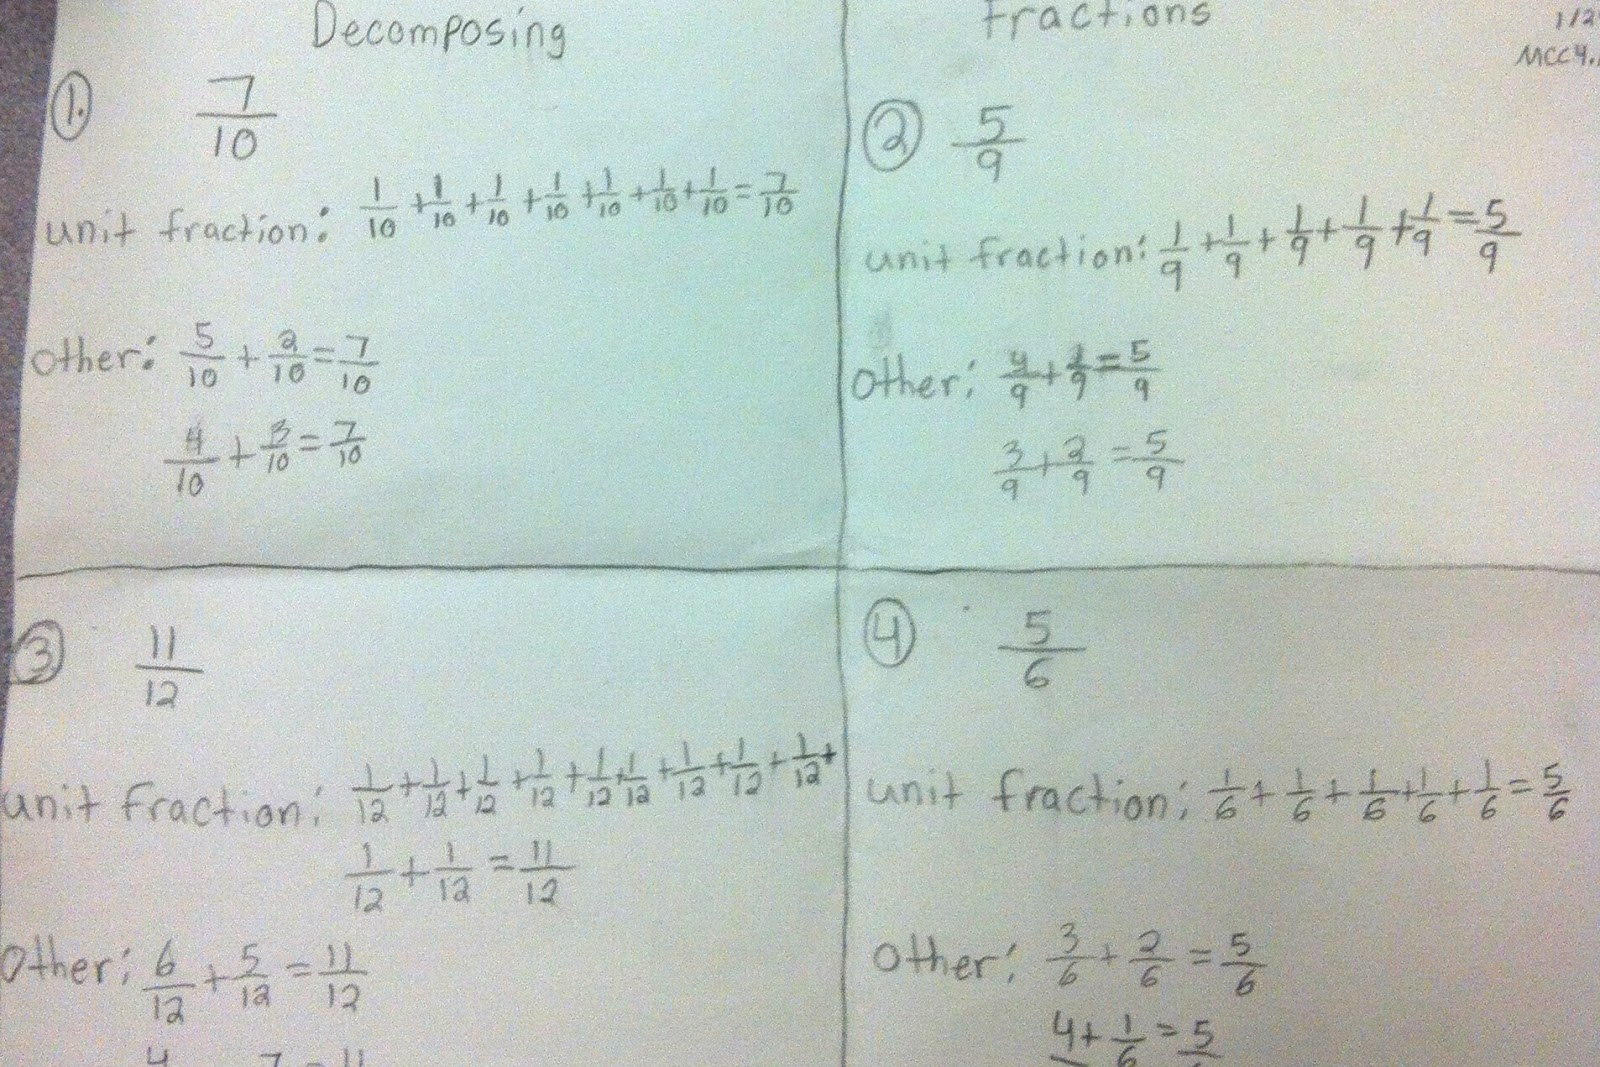 Mrs. C's Classroom: Decomposing Fractions